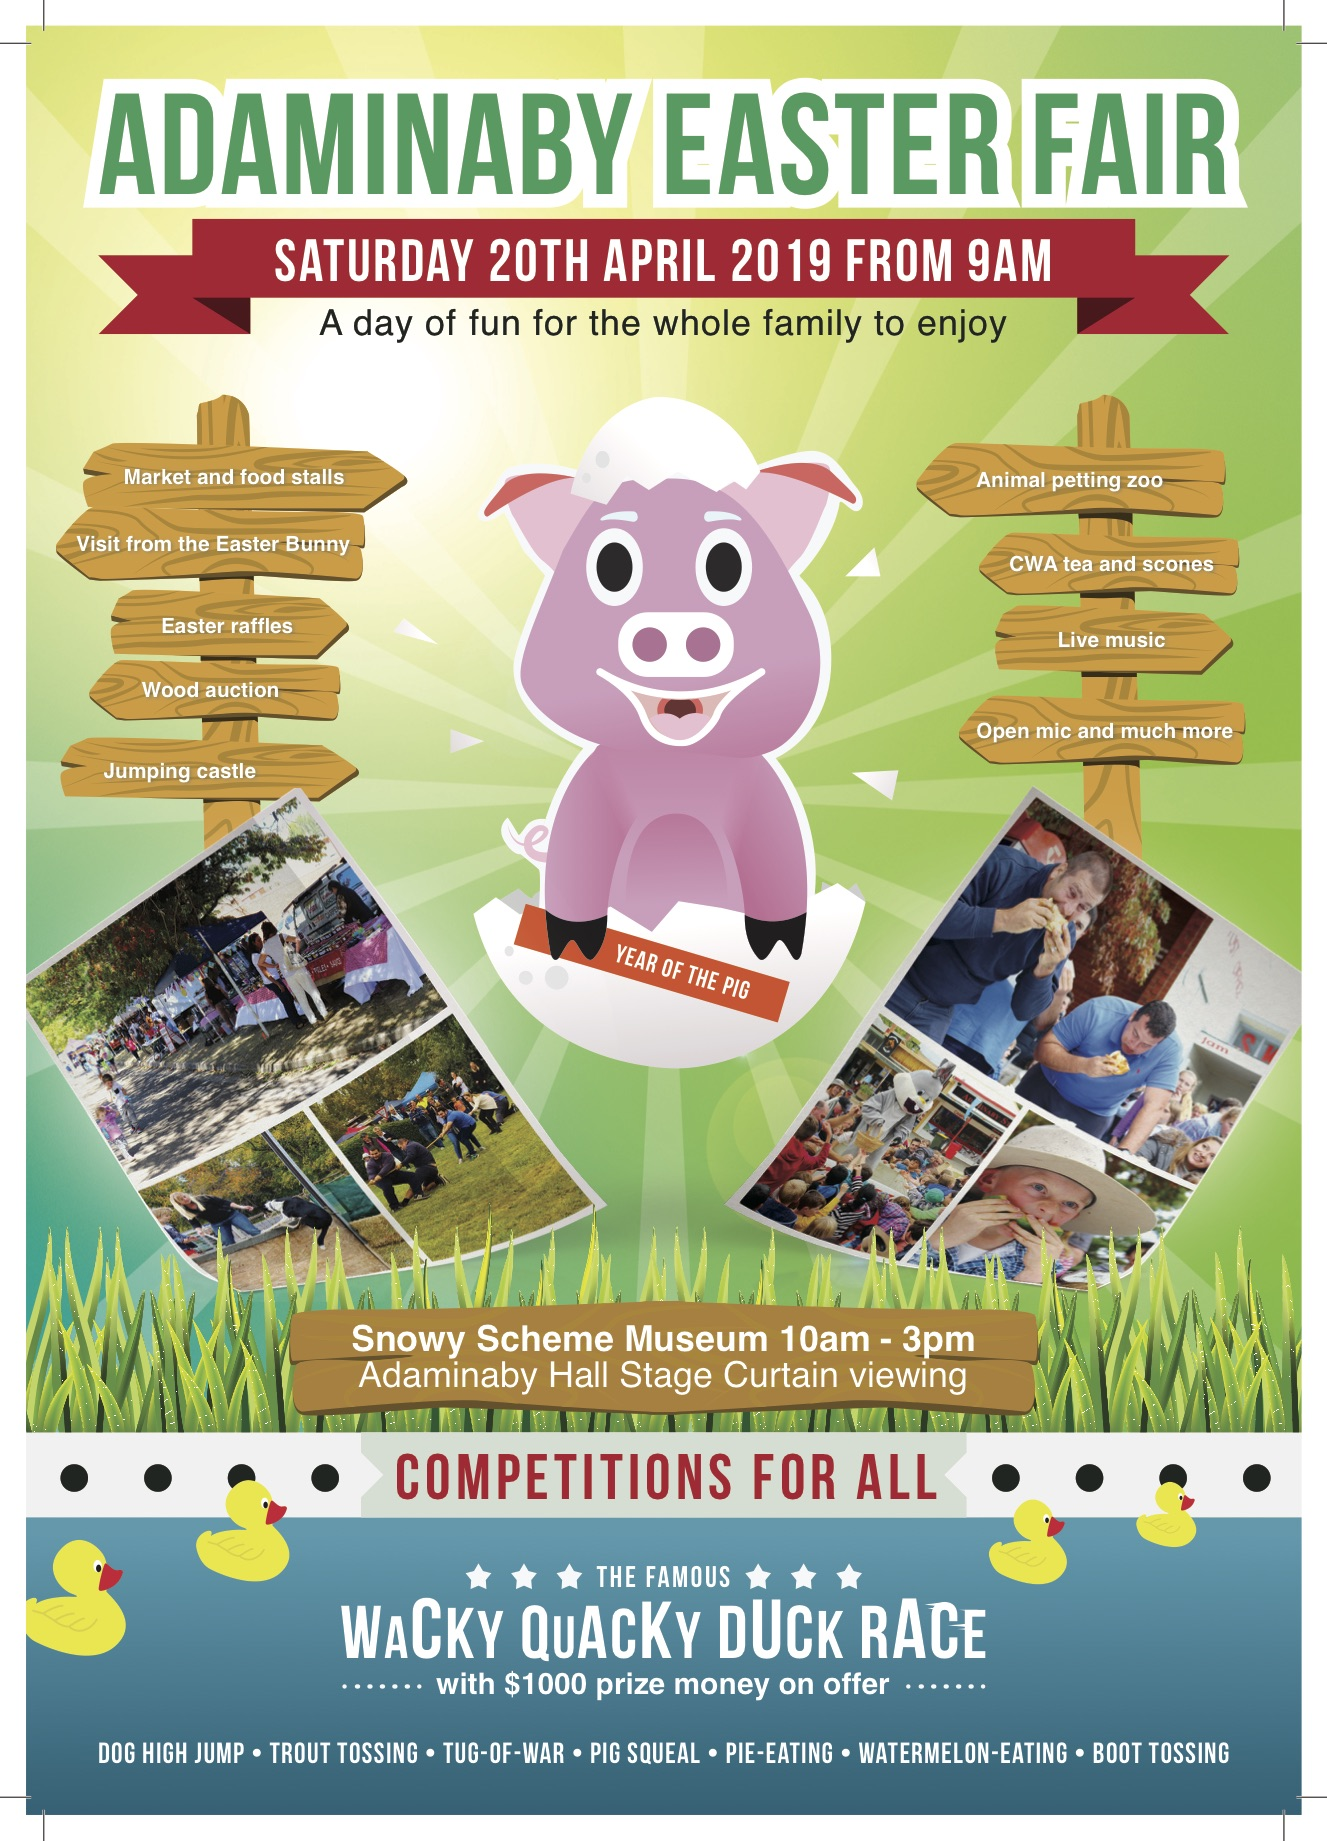 HQ100 ADAMINABY EASTER FAIR A4 POSTER